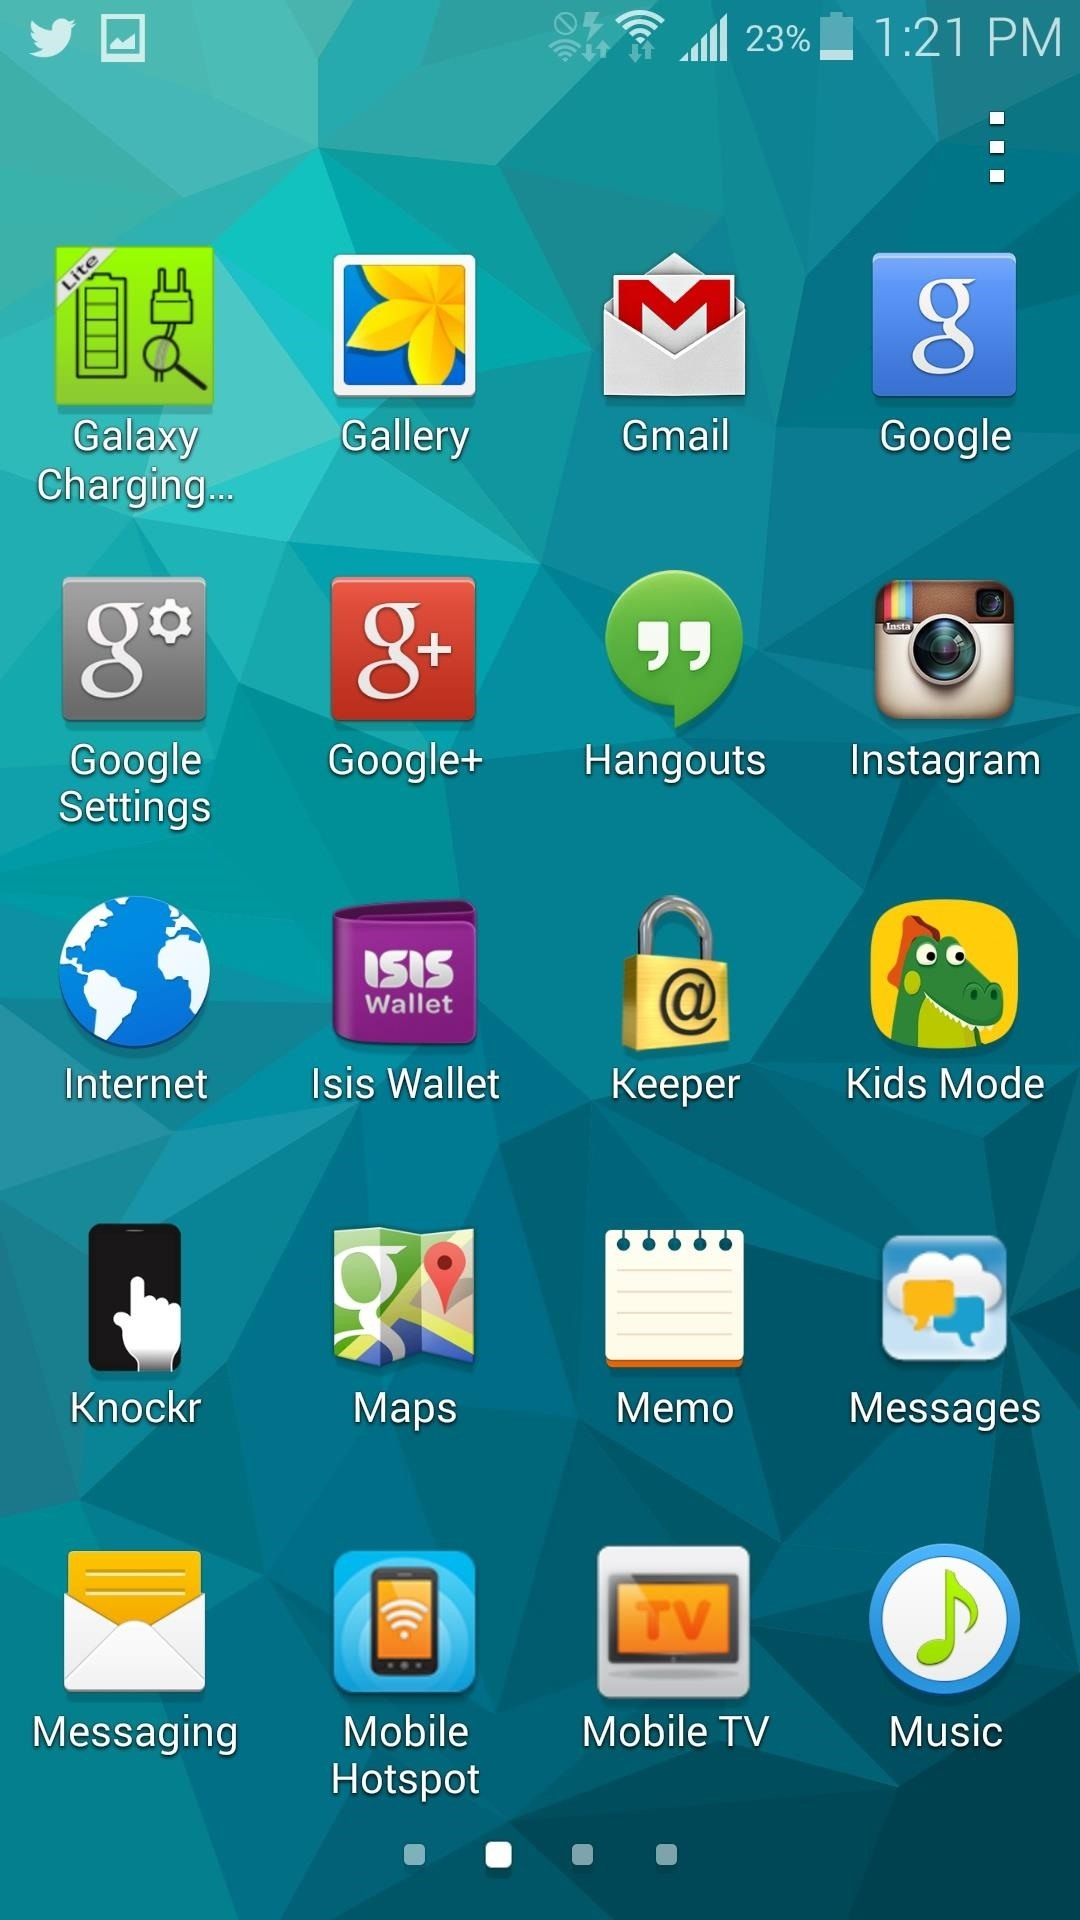 How To Enable Kids Mode On Your Galaxy S5 Samsung Galaxy S5